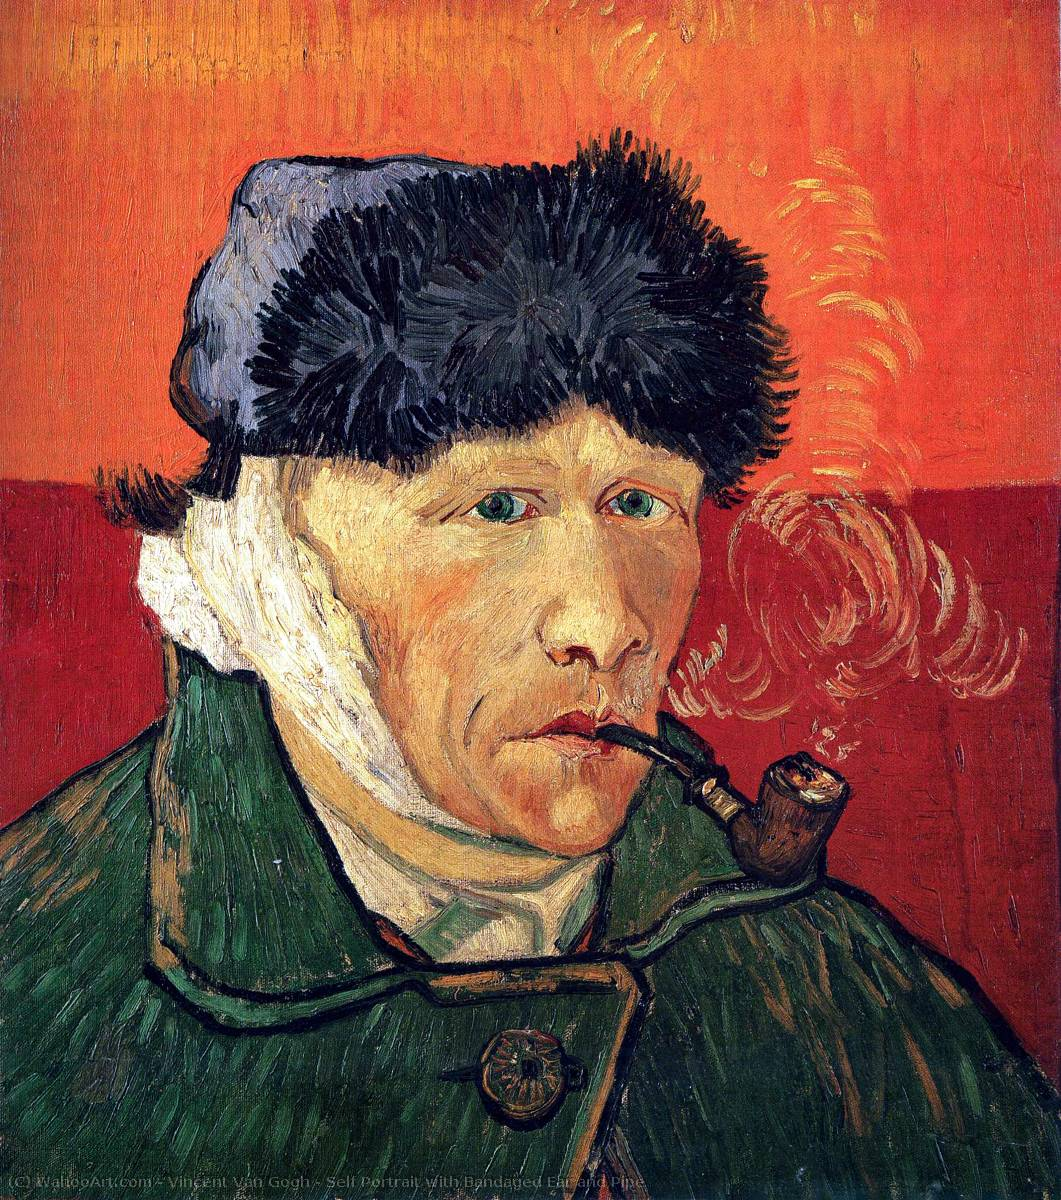 Self Portrait with Bandaged Ear and Pipe, 1889 by Vincent Van Gogh (1853-1890, Netherlands) | Art Reproductions Vincent Van Gogh | WahooArt.com